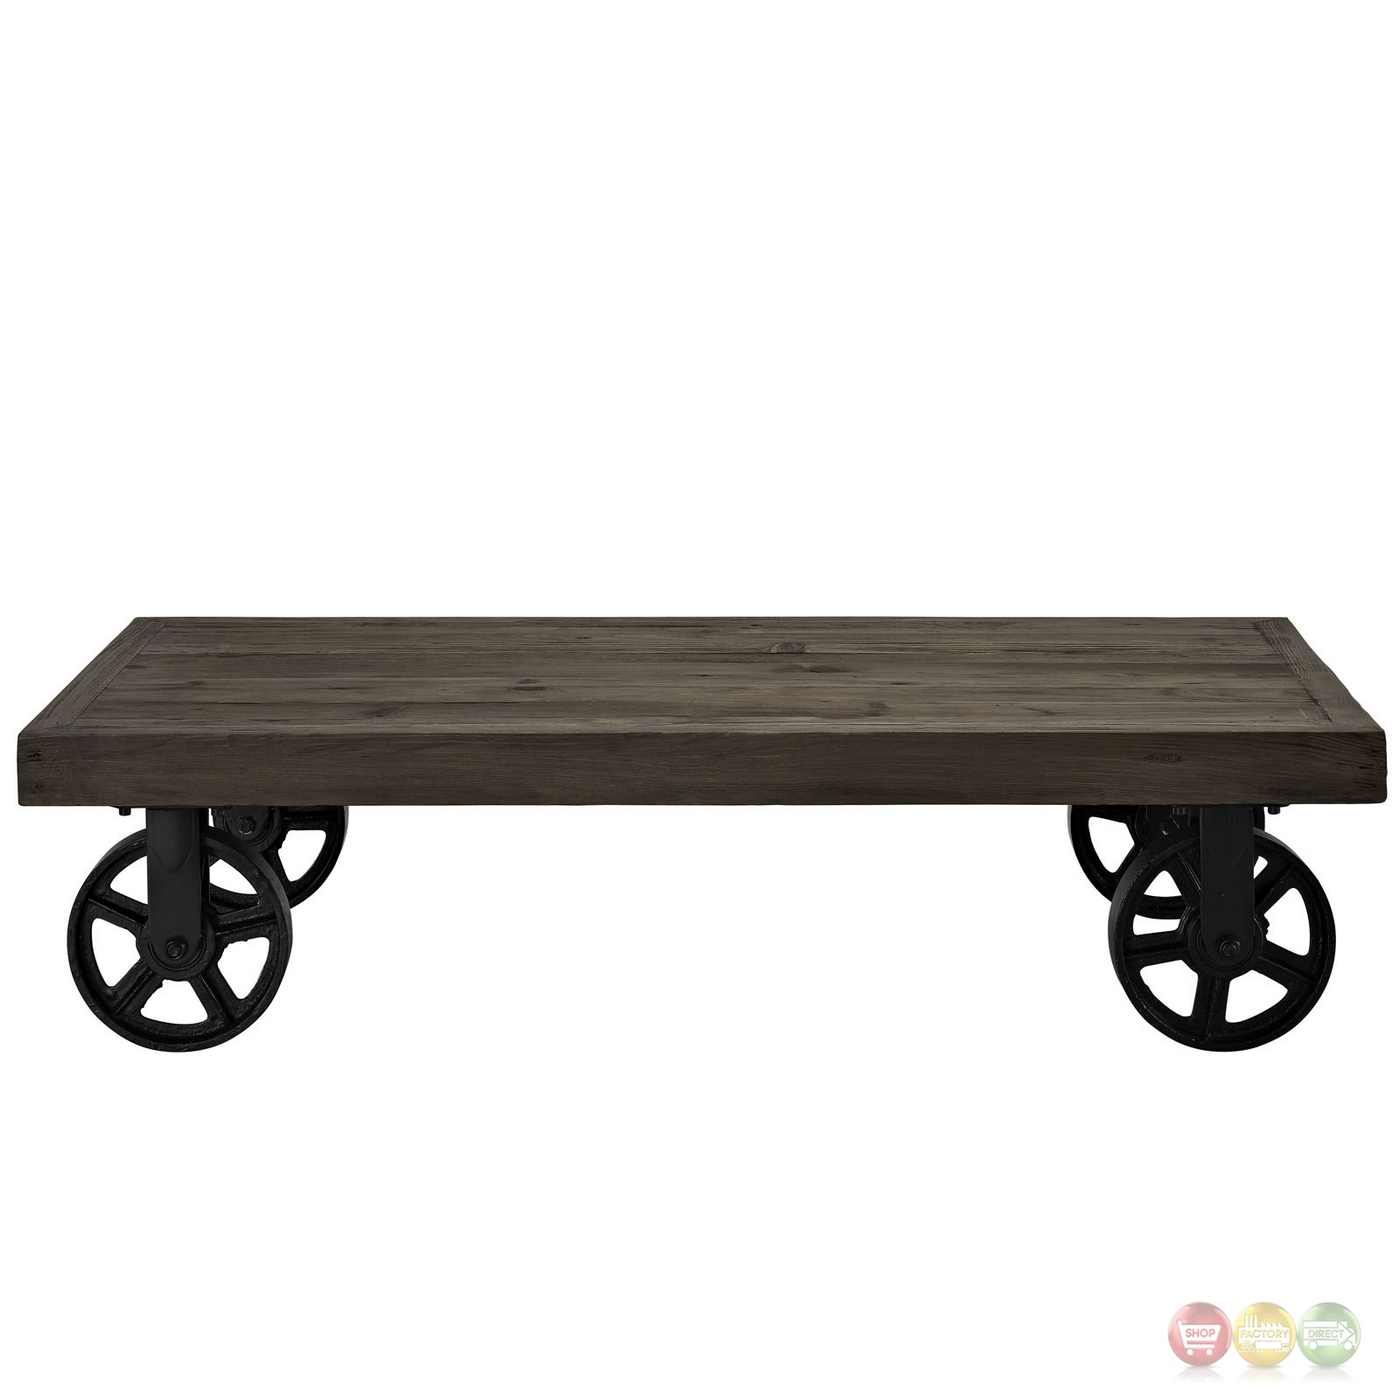 Industrial Metal Coffee Table With Wheels: Garrison Industrial Solid Pine Wood Coffee Table With